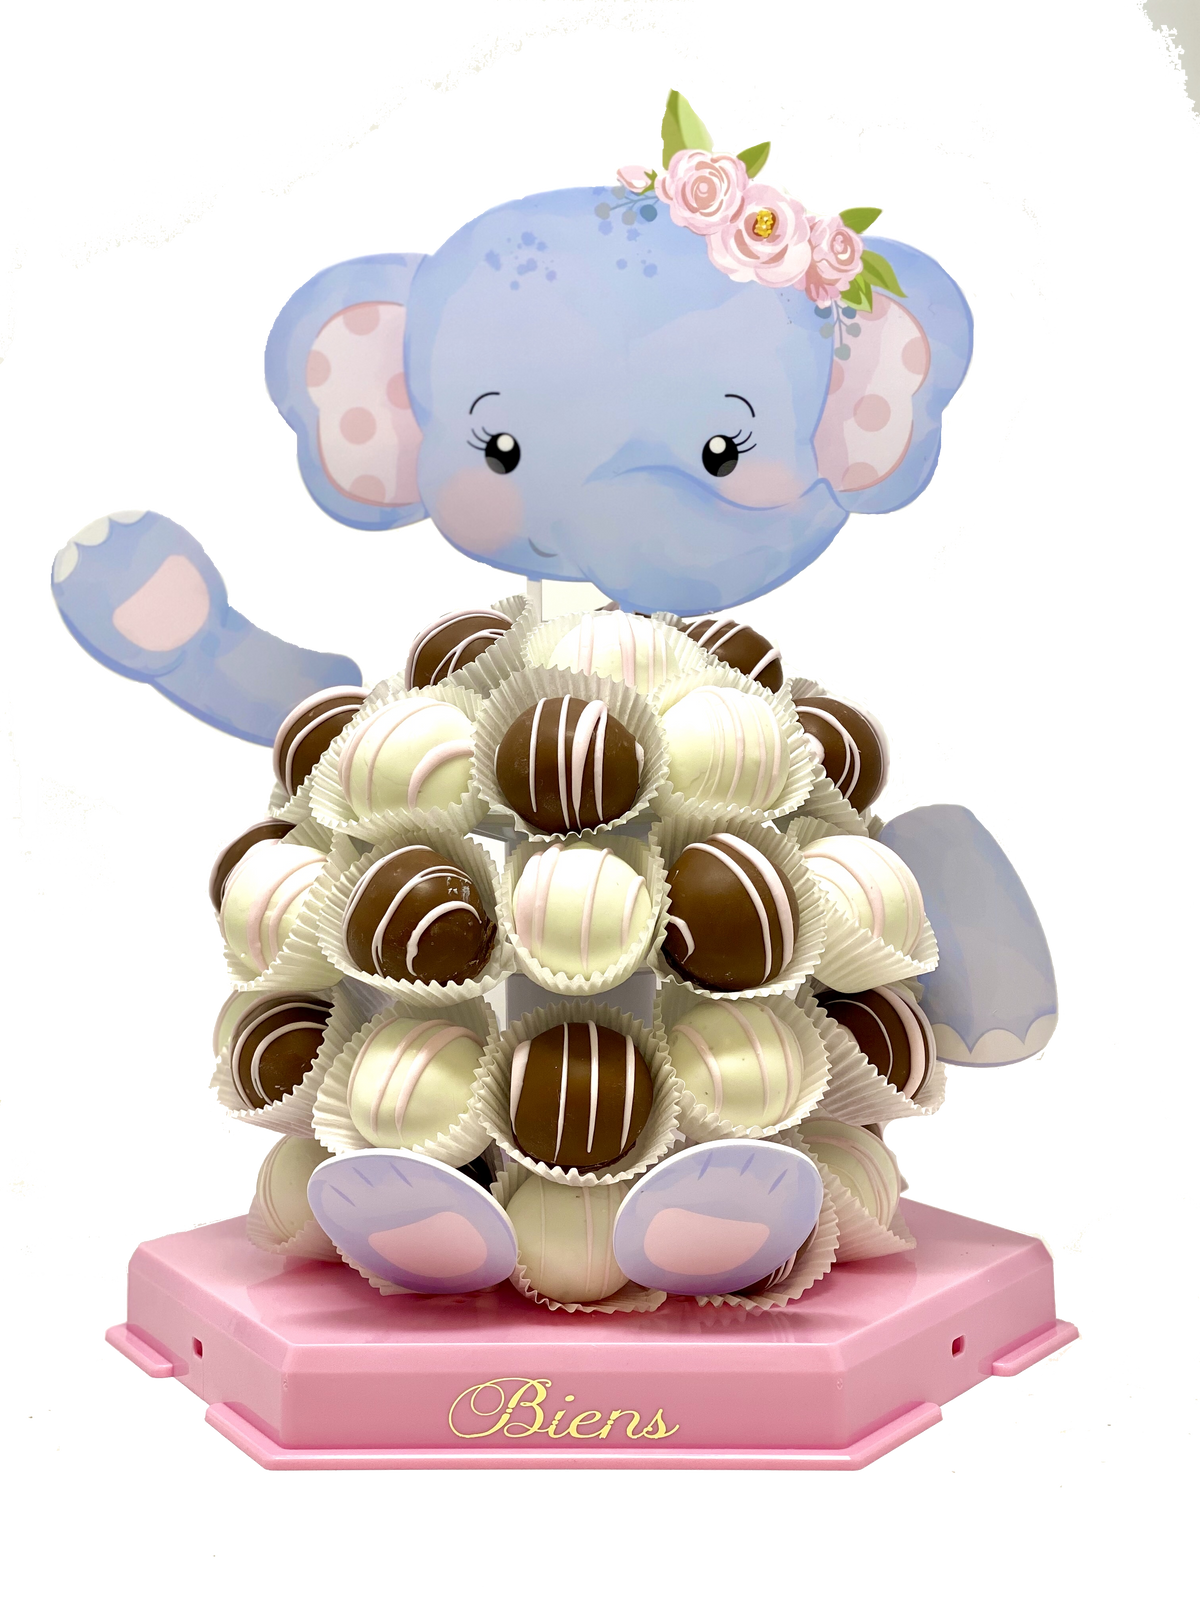 Ellie Tusk- The Elephant Biens Chocolate Centerpiece - The Dessert Ladies, custom corporate gifts, gourmet chocolate gifts,